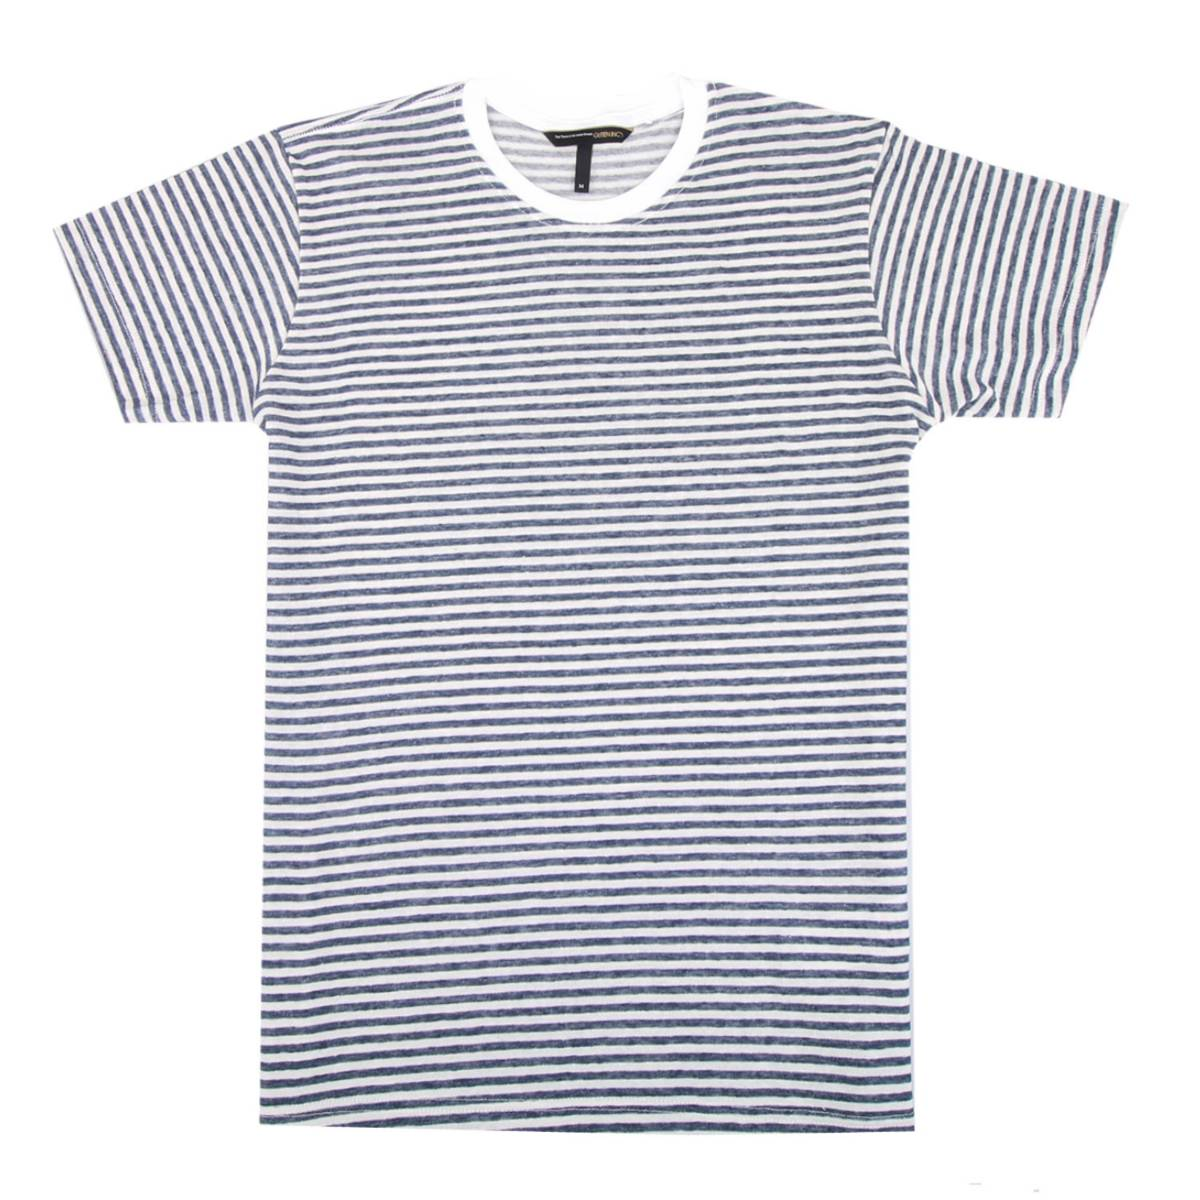 Kaos / Chester White Blue Stripe